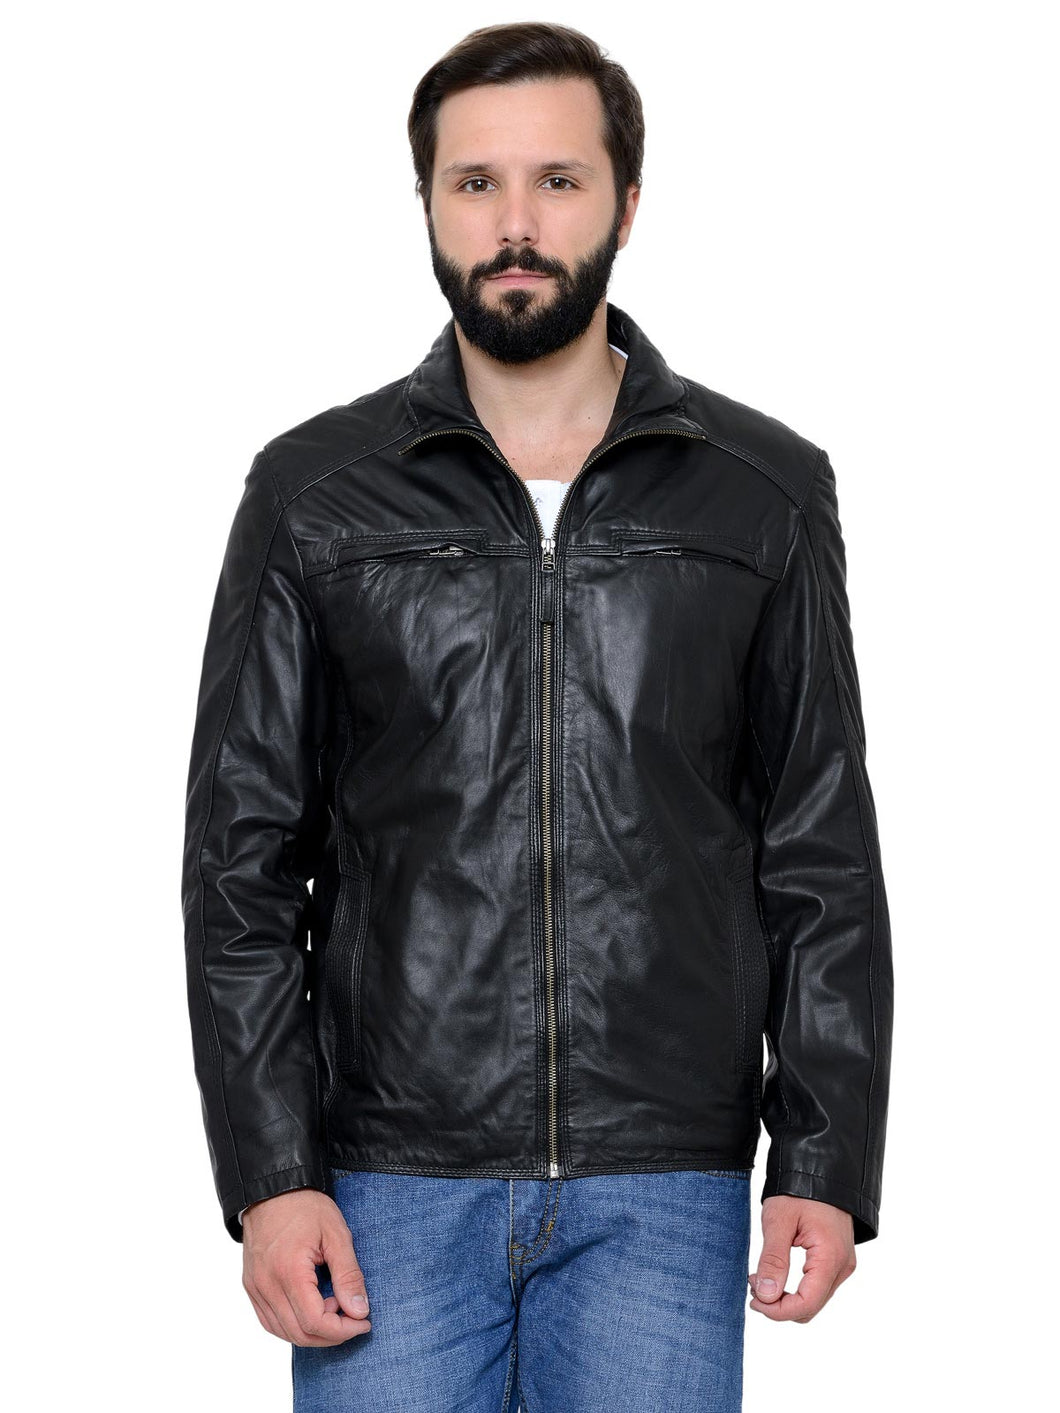 Teakwood Men's Black Leather Jackets